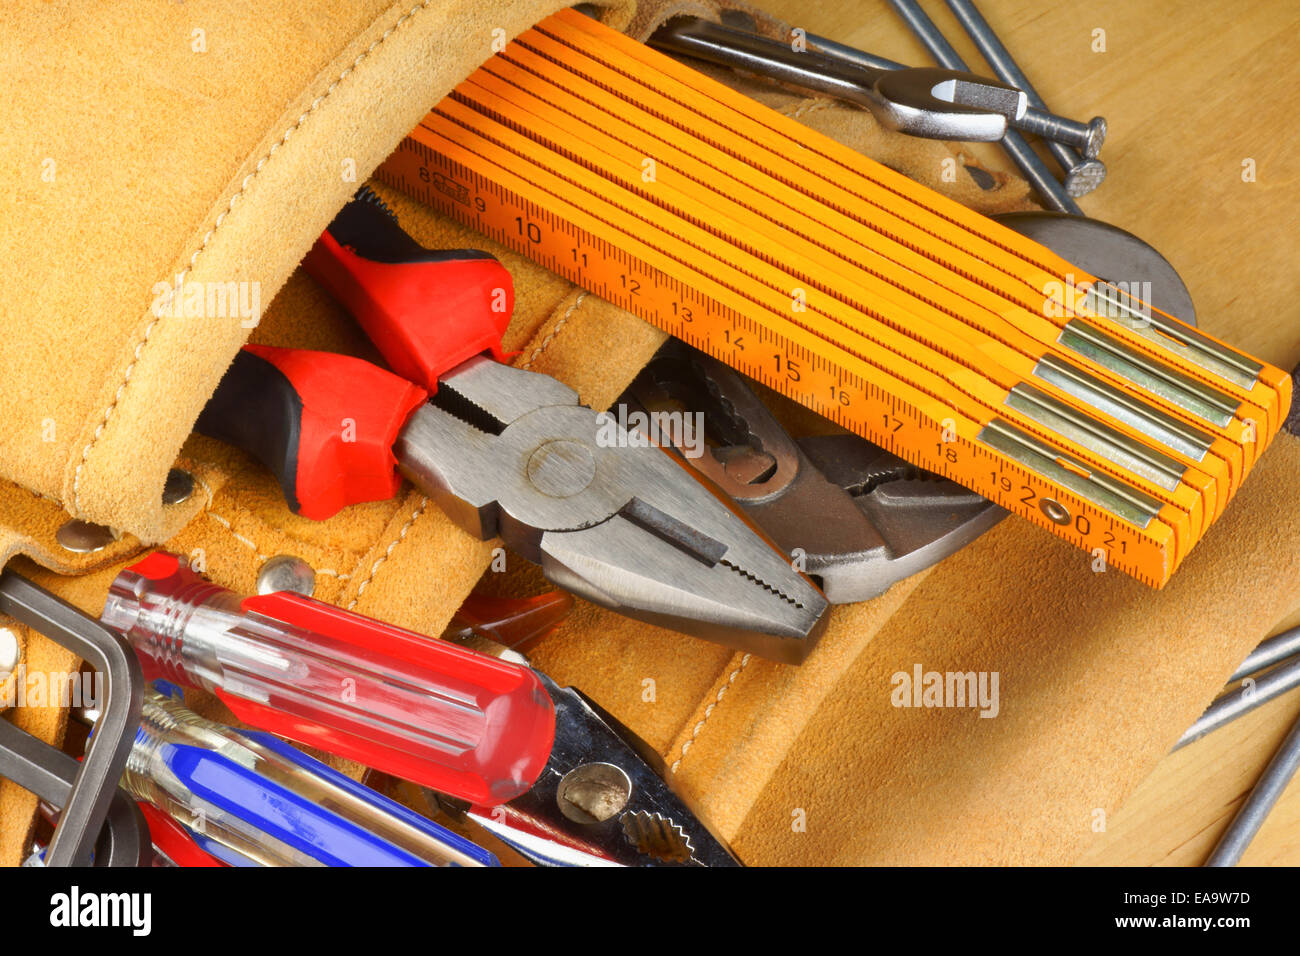 Close-up of a hand tool set with screwdrivers, hexagonal keys, a pair of pliers, a metric ruler and some other tools. - Stock Image